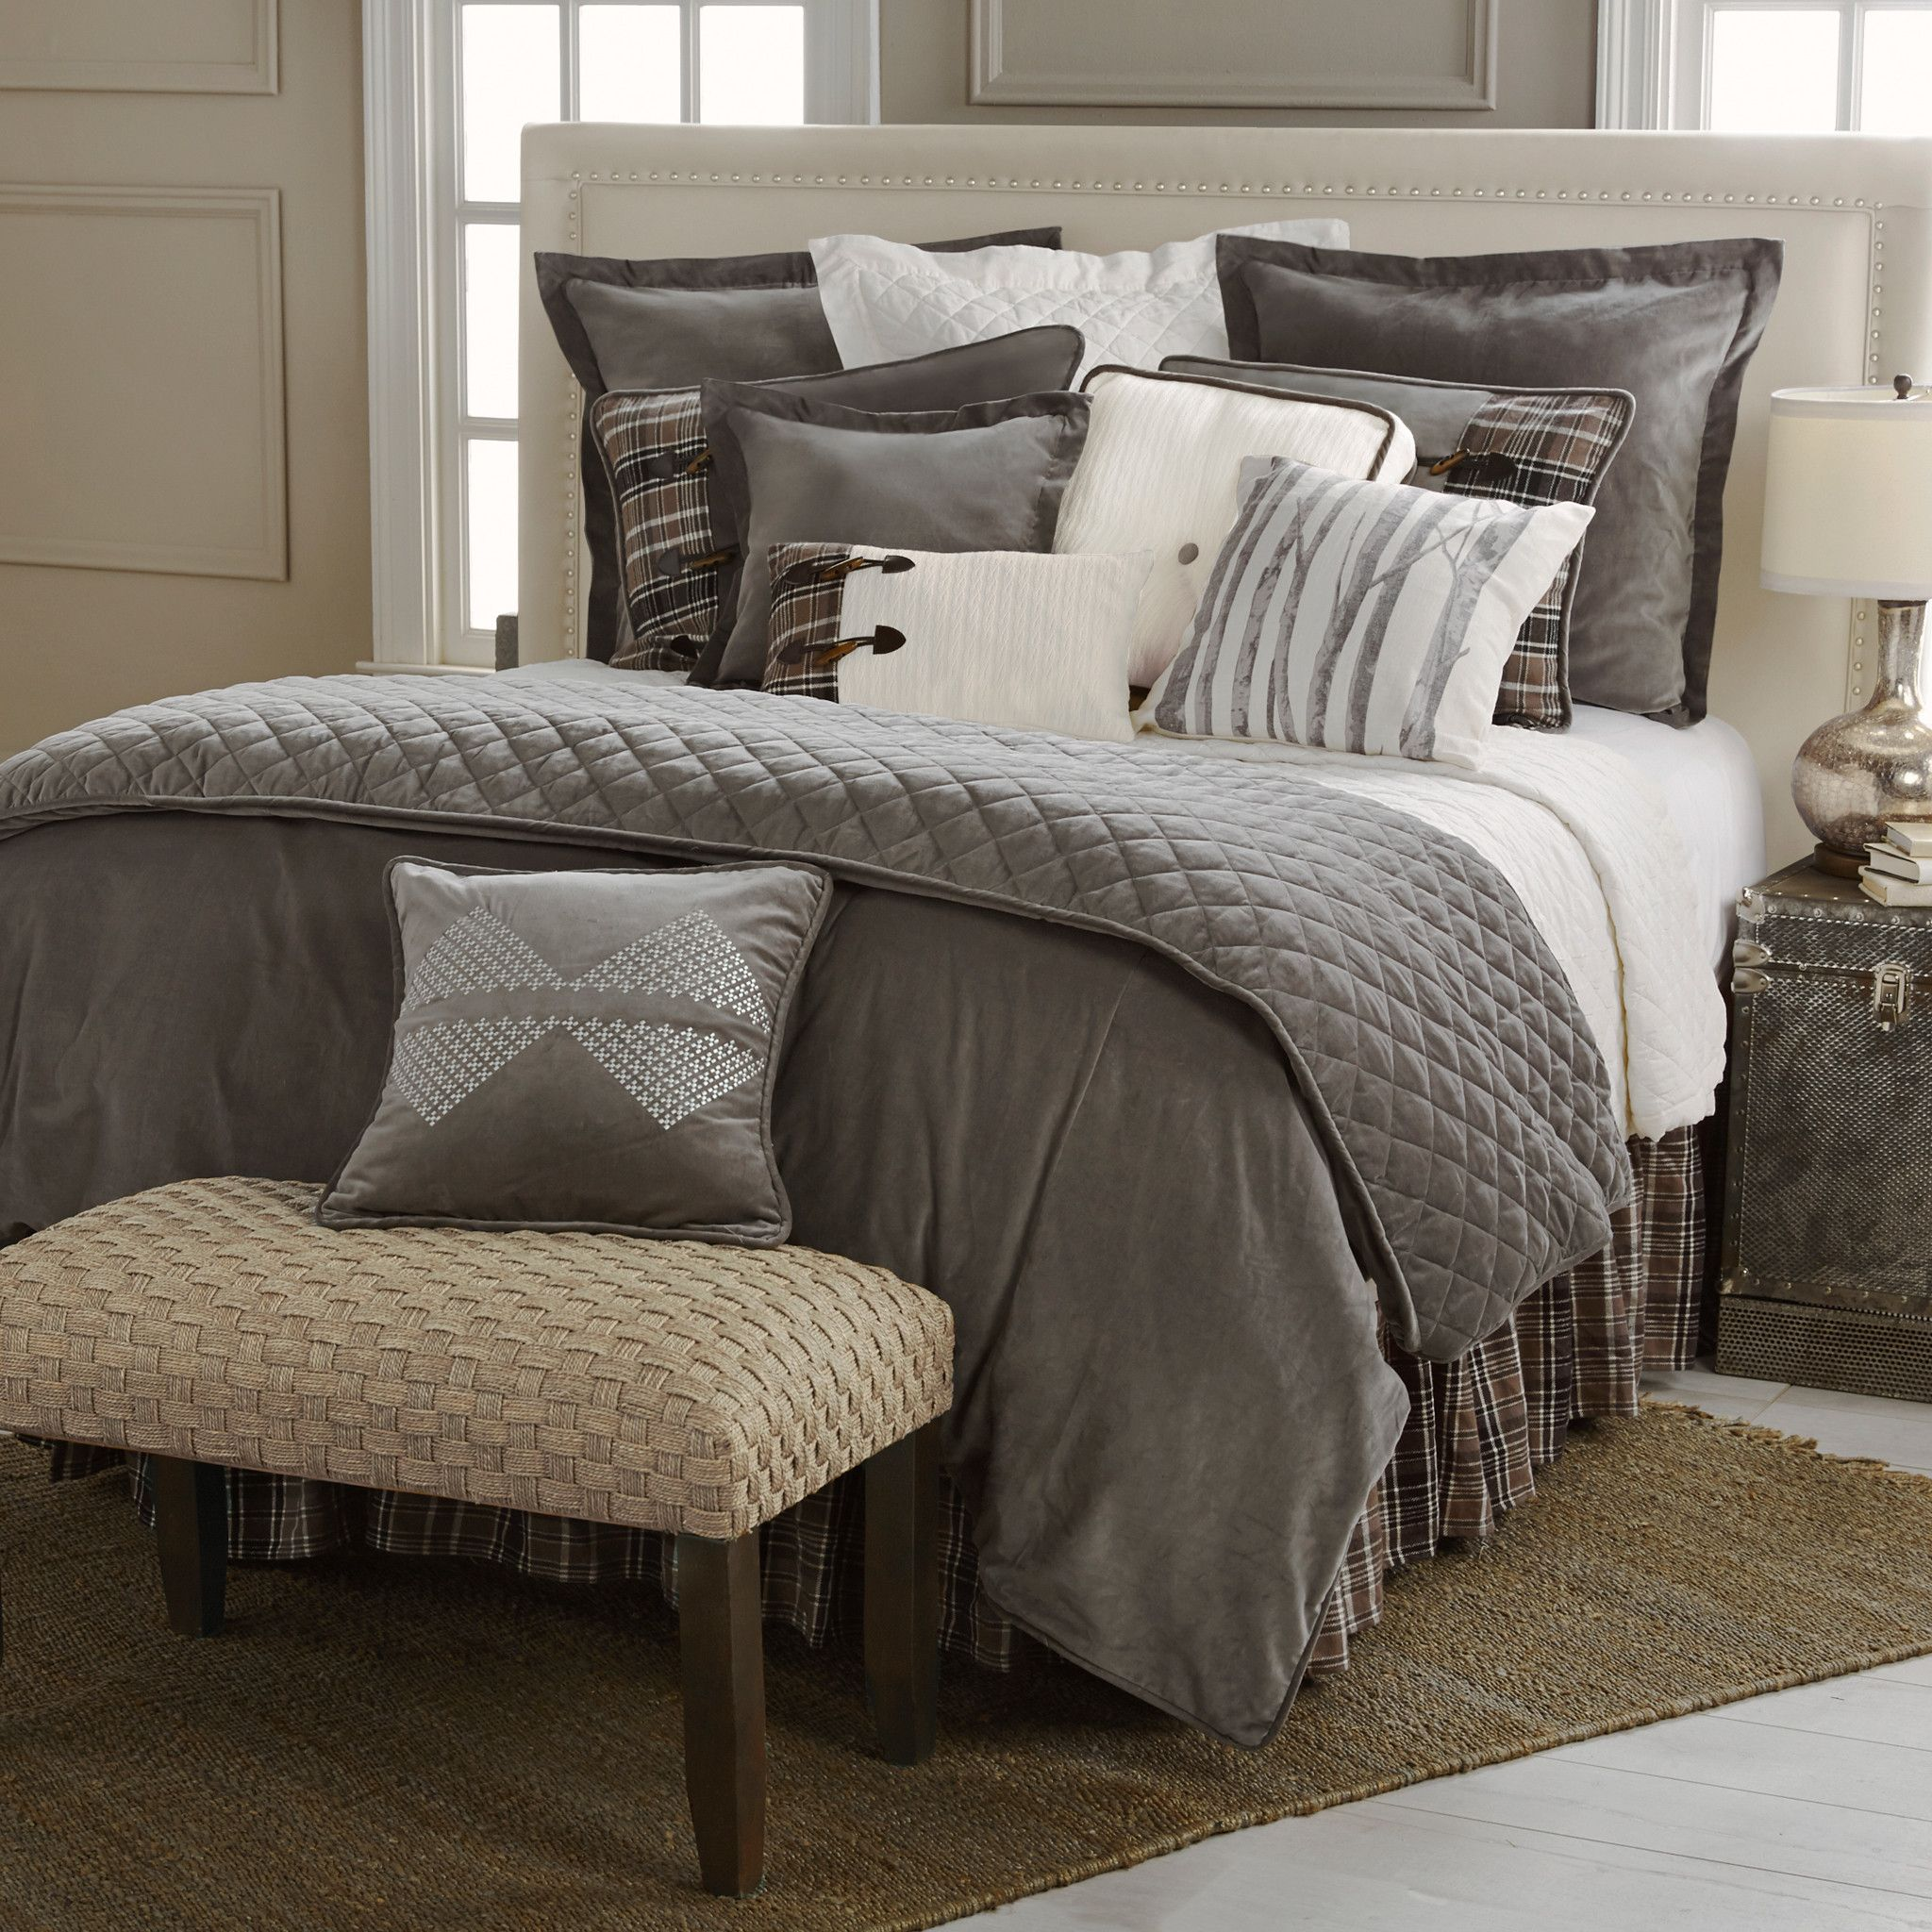 quilt lush aster full comforter quilted amazon piece bedding queen rustic set comforters com sets decor unusual